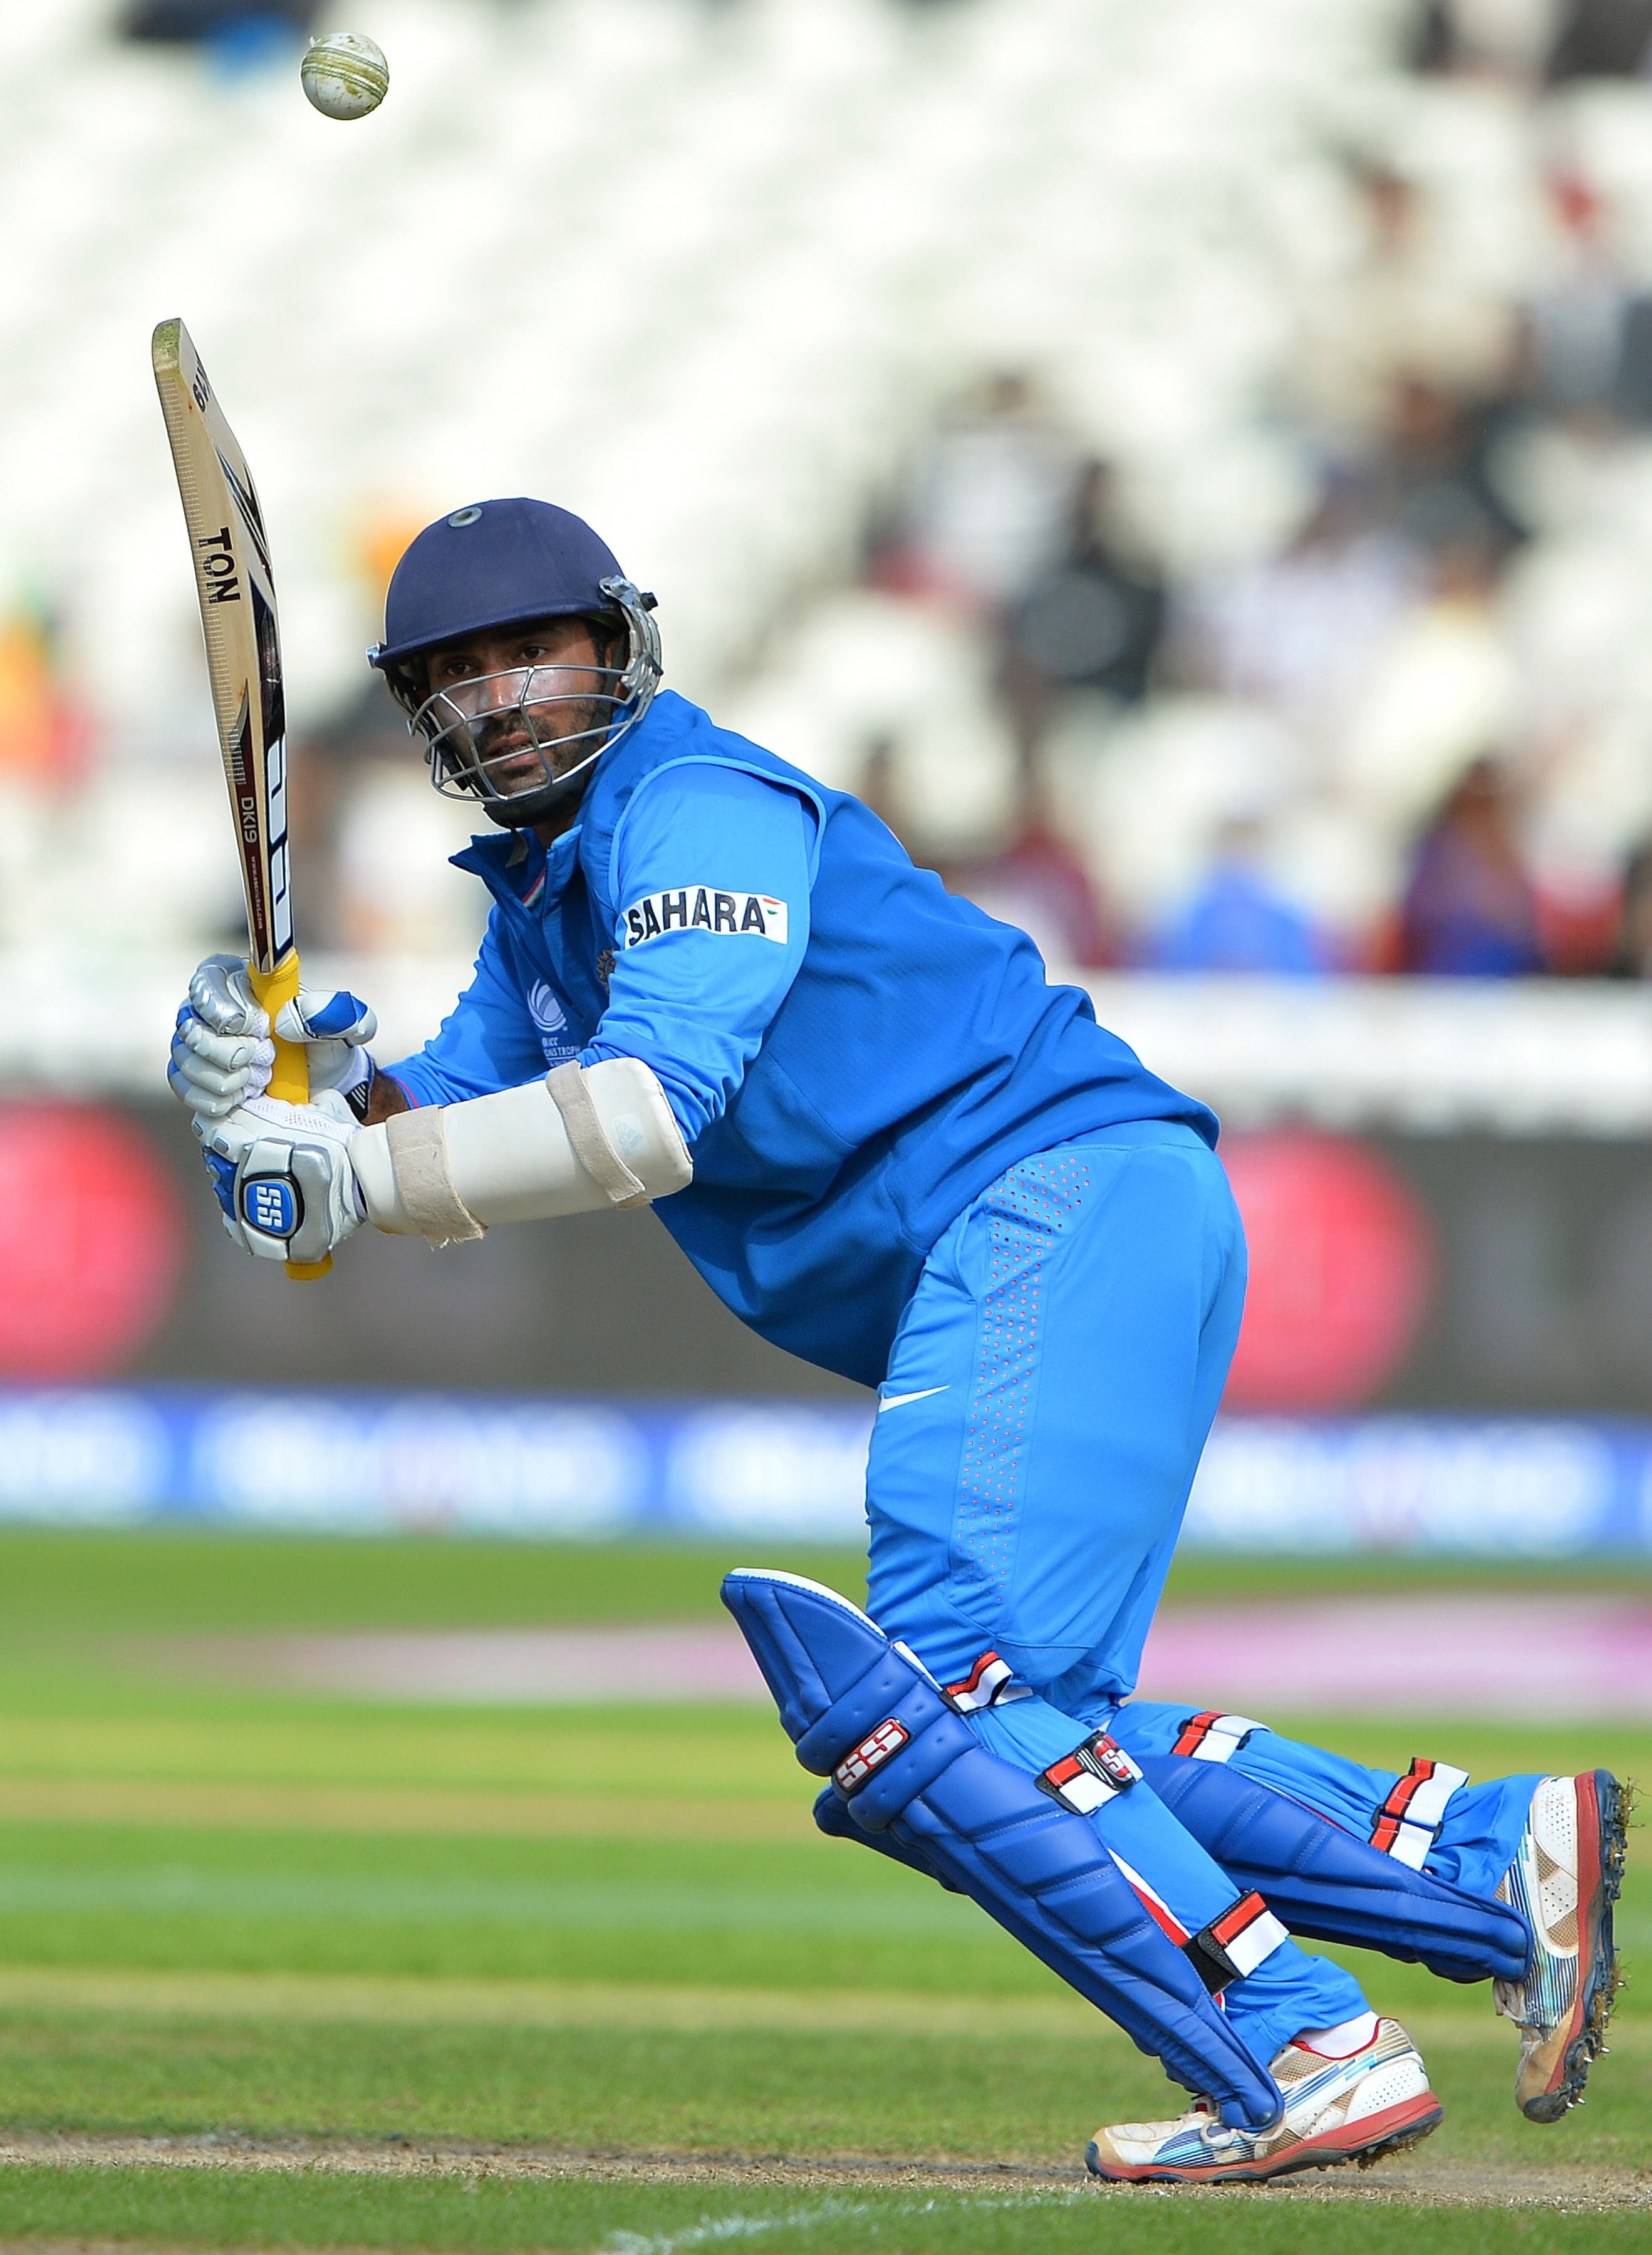 Once Raina departed when India were in a spot of bother at 110 for 4, Dinesh Karthik took centrestage with Kohli and played a solid hand, reaching a half-century.